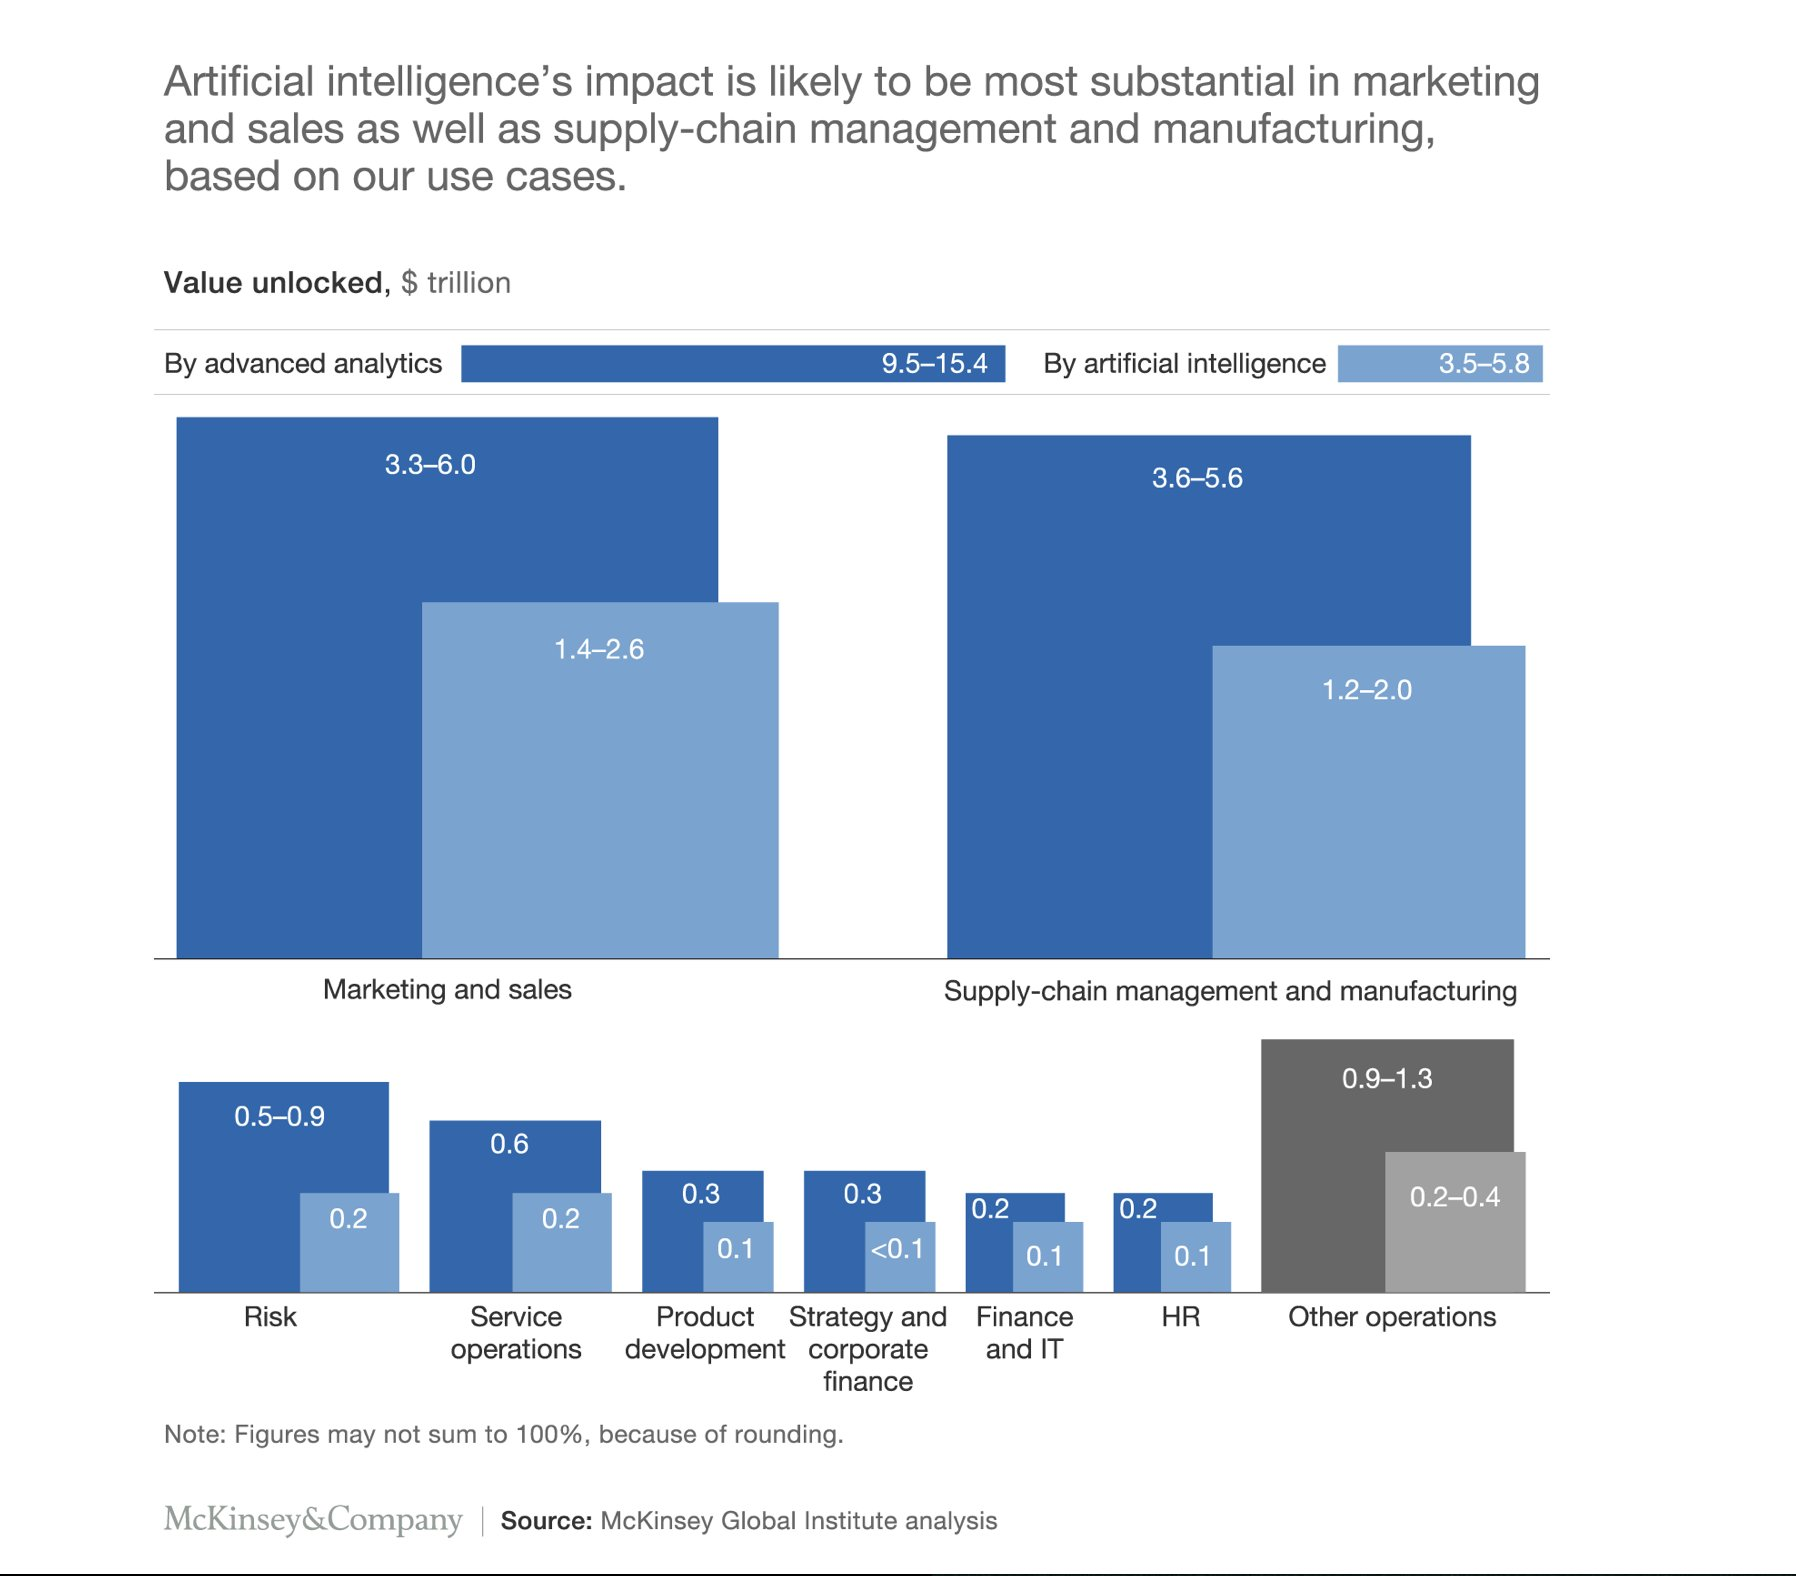 9,5-15,7 trillion USD as Value unlocked by Advanced Analytics worldwide and 3,5-5,8 by AI